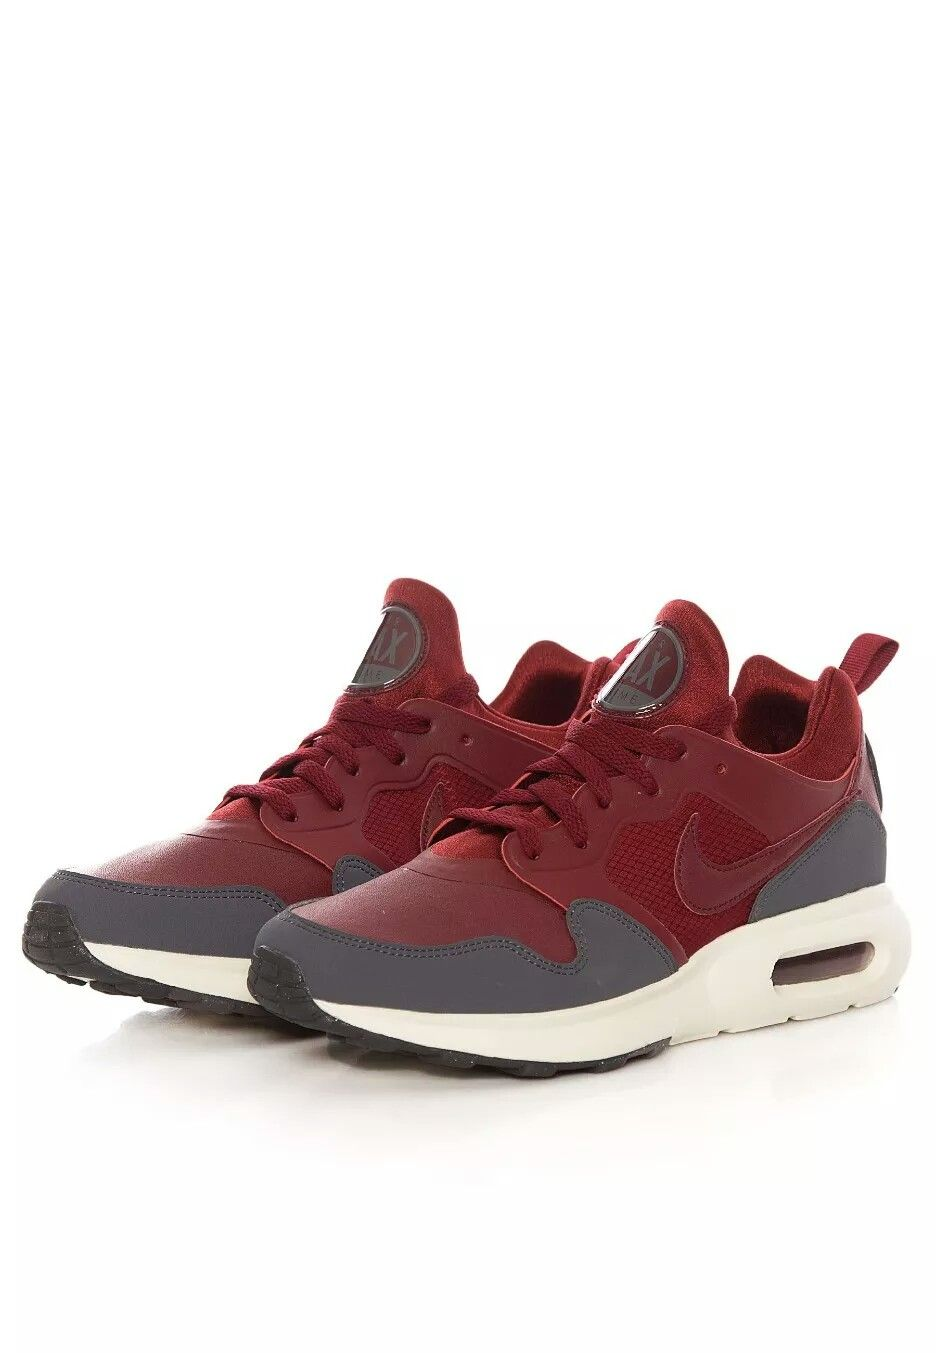 big sale 043ea 0bed9 NIKE AIR MAX PRIME SL Color TEAM RED  TEAM REDDARK GREY Size 10.5 Women s  Size 9  75+(Free Shipping)